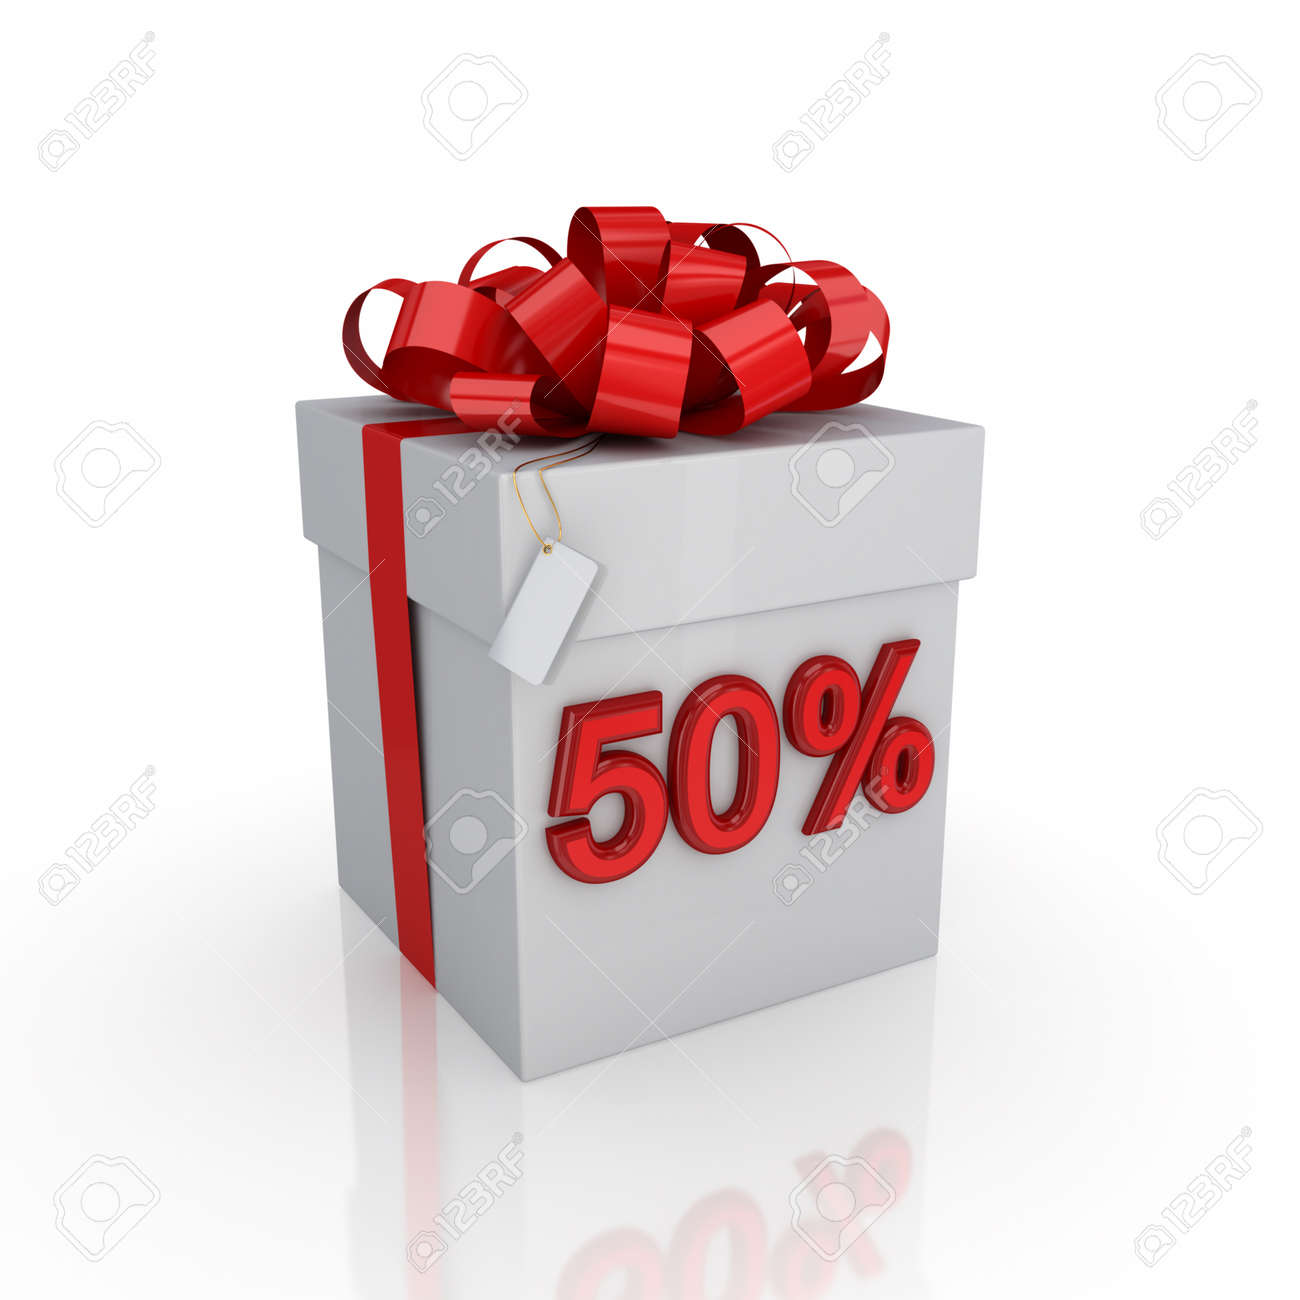 Gift box with a signature 50%.Isolated on white background. 3d rendered. Stock Photo - 12222684